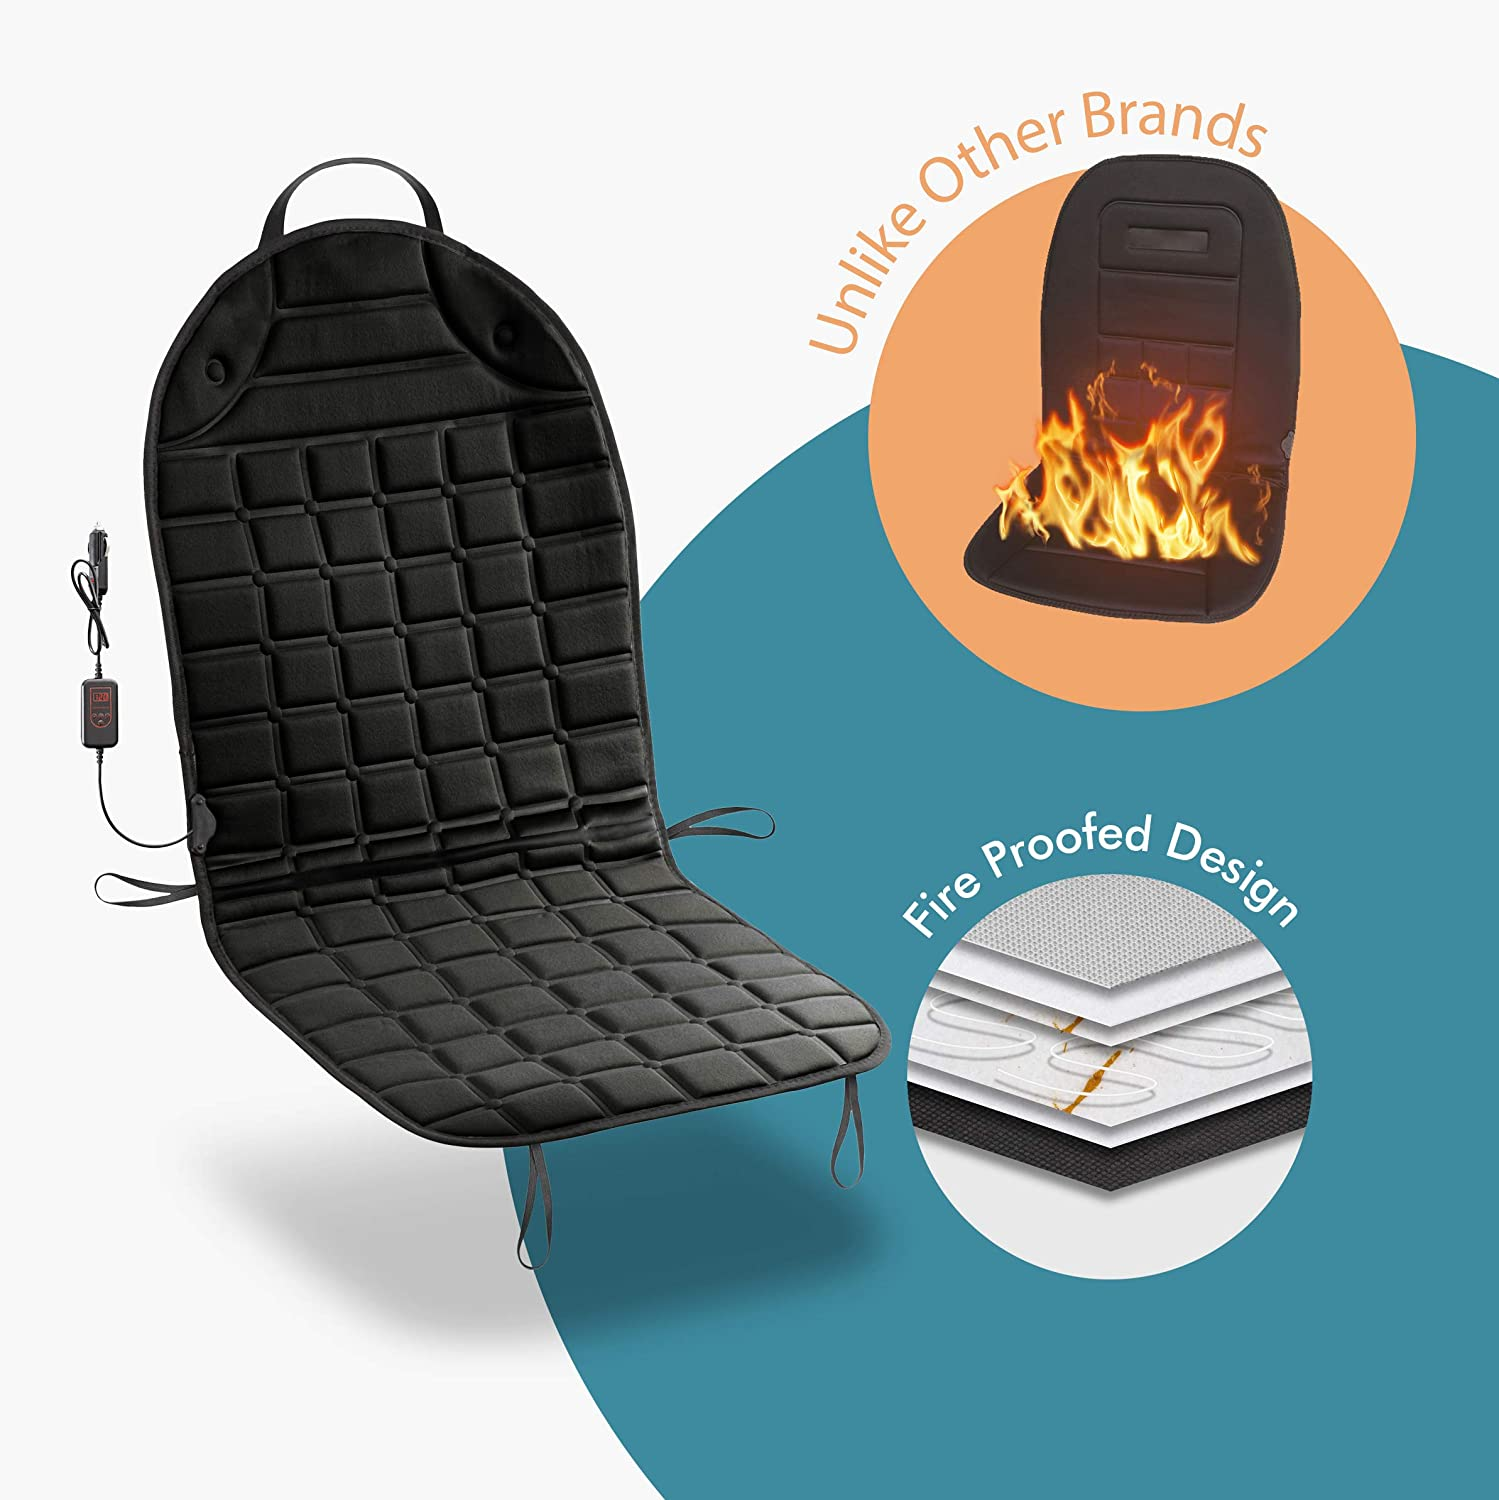 Fireproof New and Improved 2019 Version 12V Heating Warmer Pad Cover Perfect for Cold Weather and Winter Driving 4350394586 Zone Tech Car Heated Seat Cover Cushion Hot Warmer